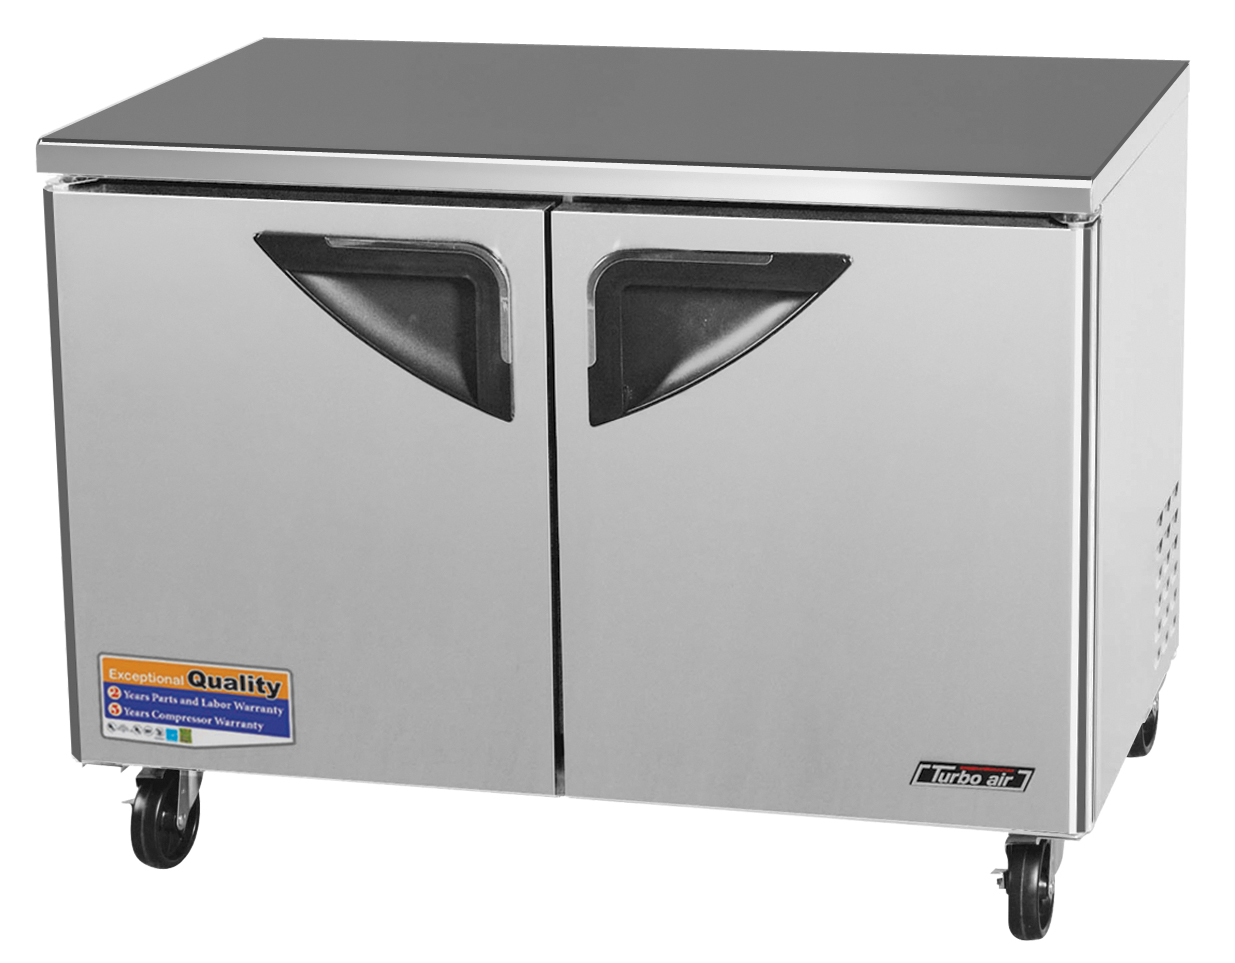 Super Deluxe Series Undercounter Freezer, two-section